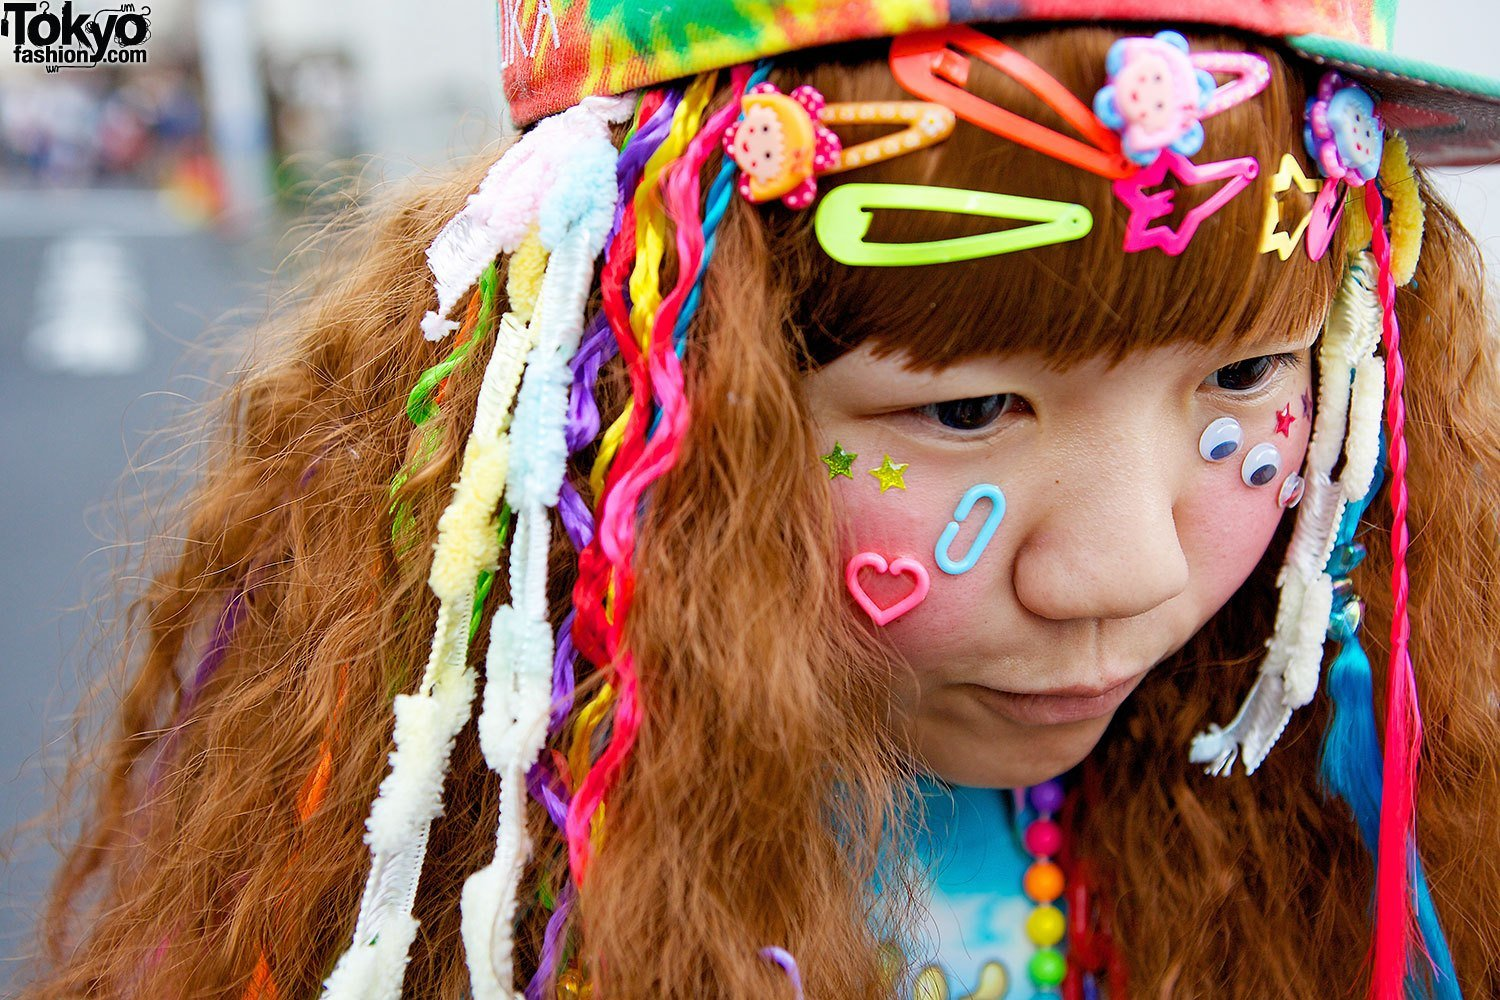 New Colorful Hadeko Fashion W Tie Dye Decora Hair Clips In Ideas With Pictures